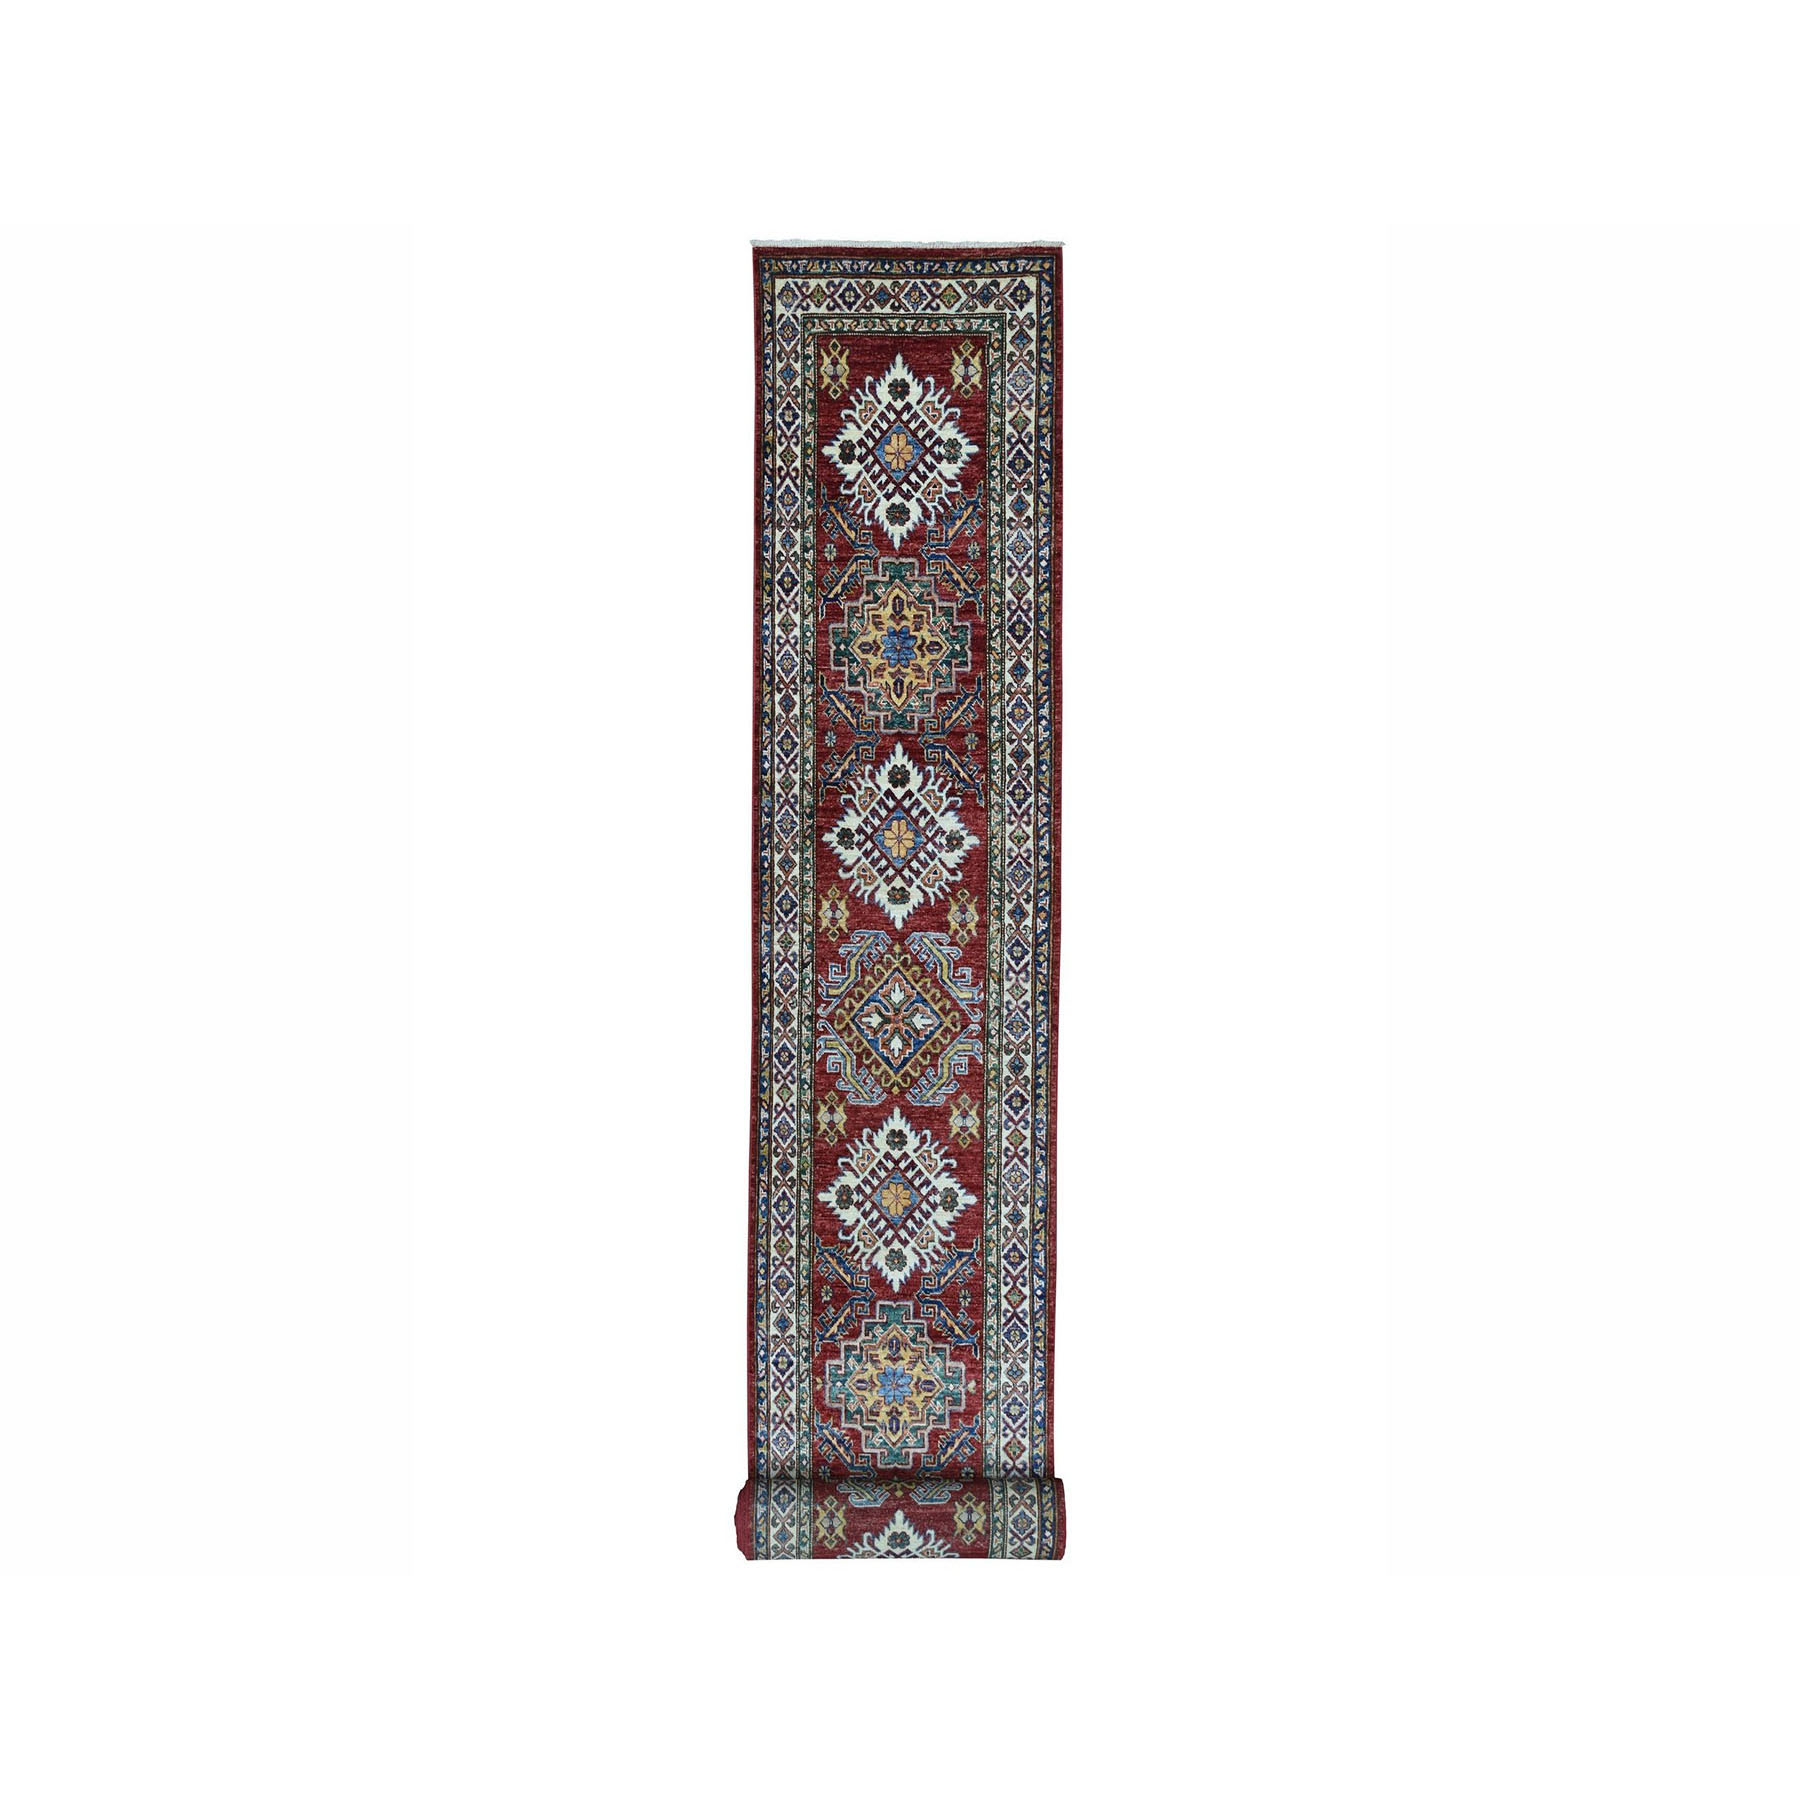 "2'8""X20' Super Kazak Red Geometric Design Pure Wool Hand-Knotted Xl Runner Oriental Rug moae0069"